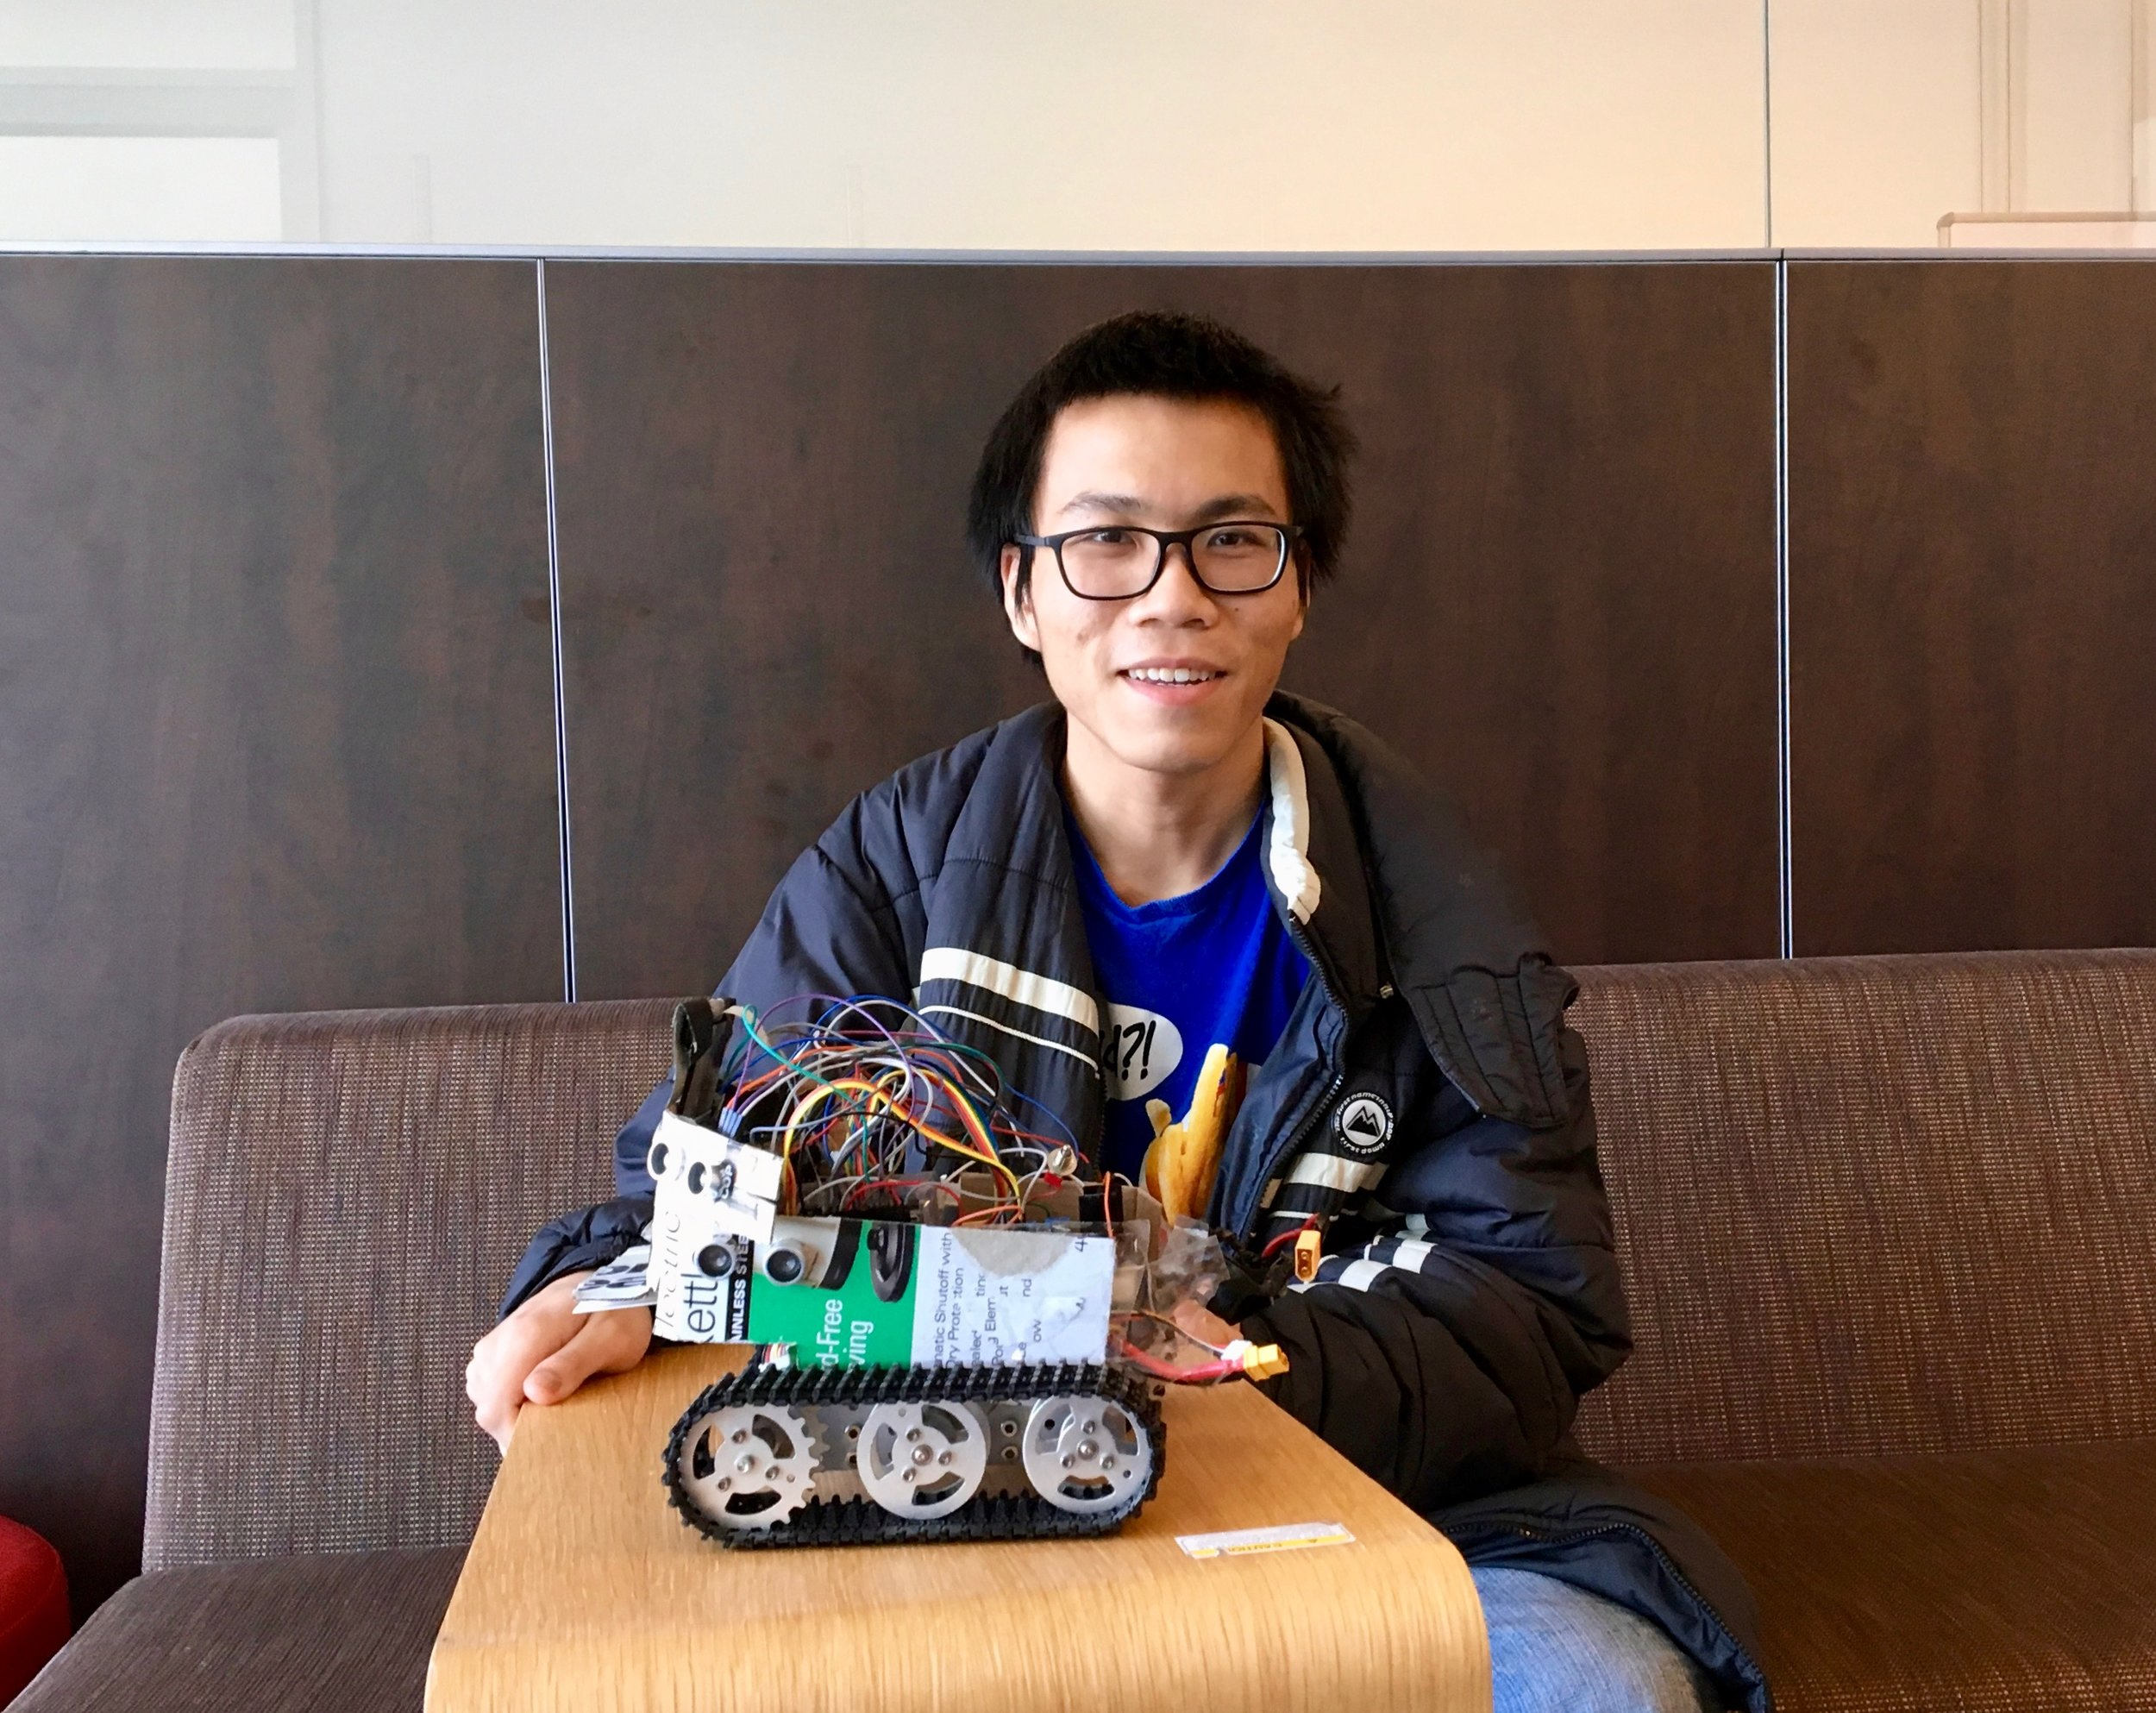 - Cao with one of his robots. This robot can detect its location using a gyroscope and Bluetooth.